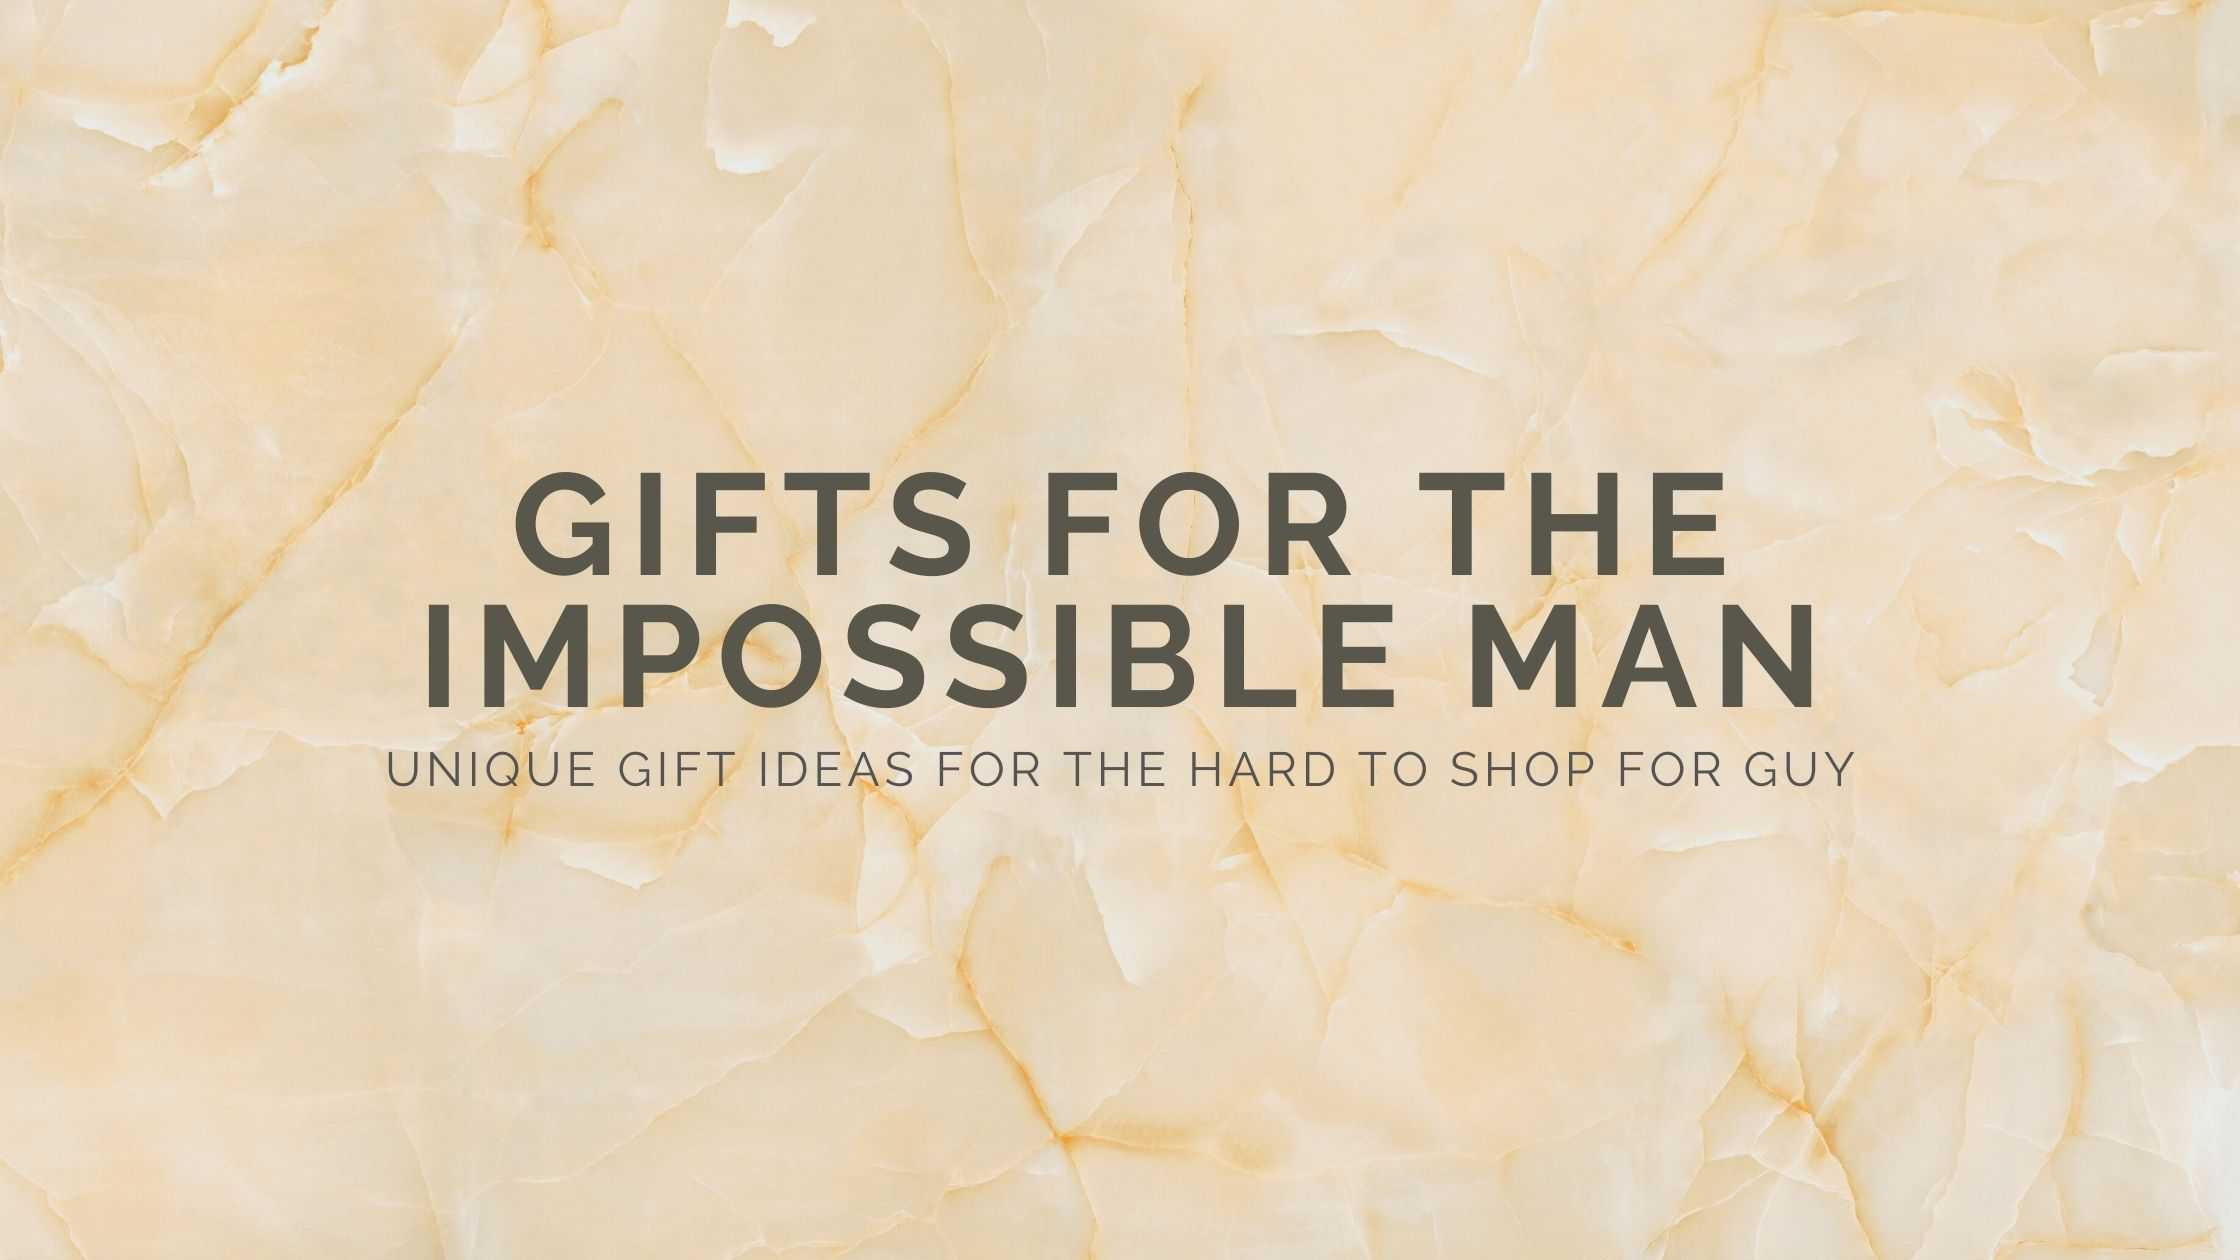 29 Gifts for Hard to Buy for Men That Makes Your Life Easier (2021)